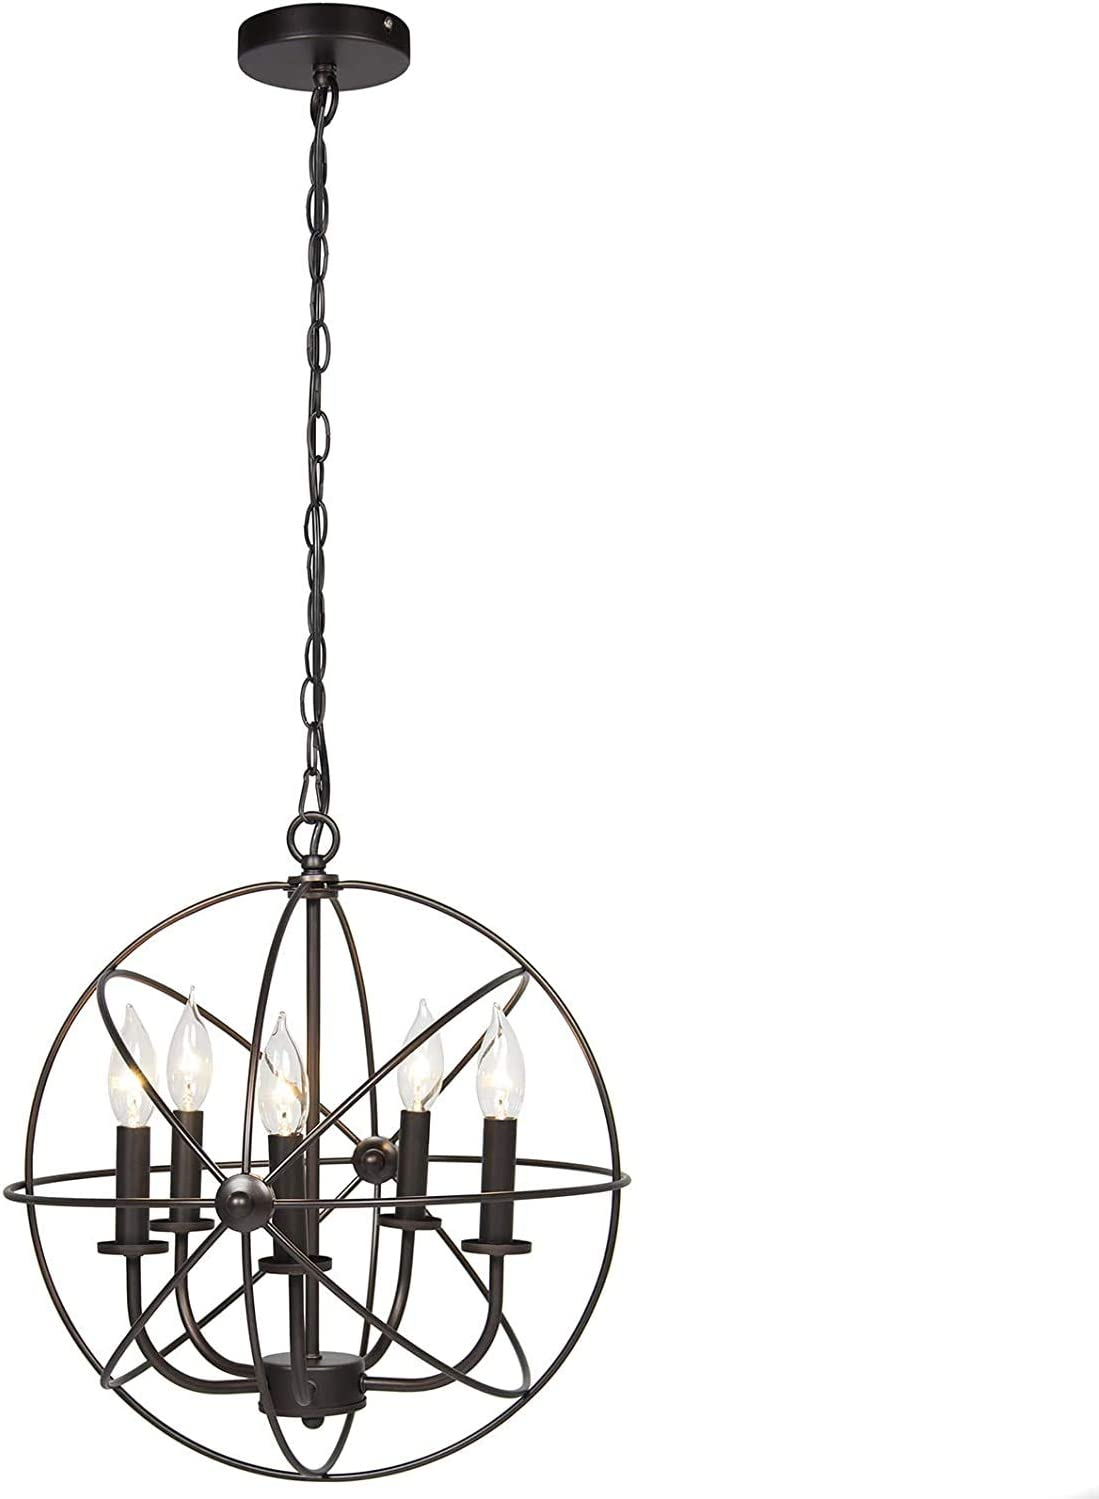 Orb Chandelier Old-Fashioned Industrial Soldering 5 Lights with 100% quality warranty!